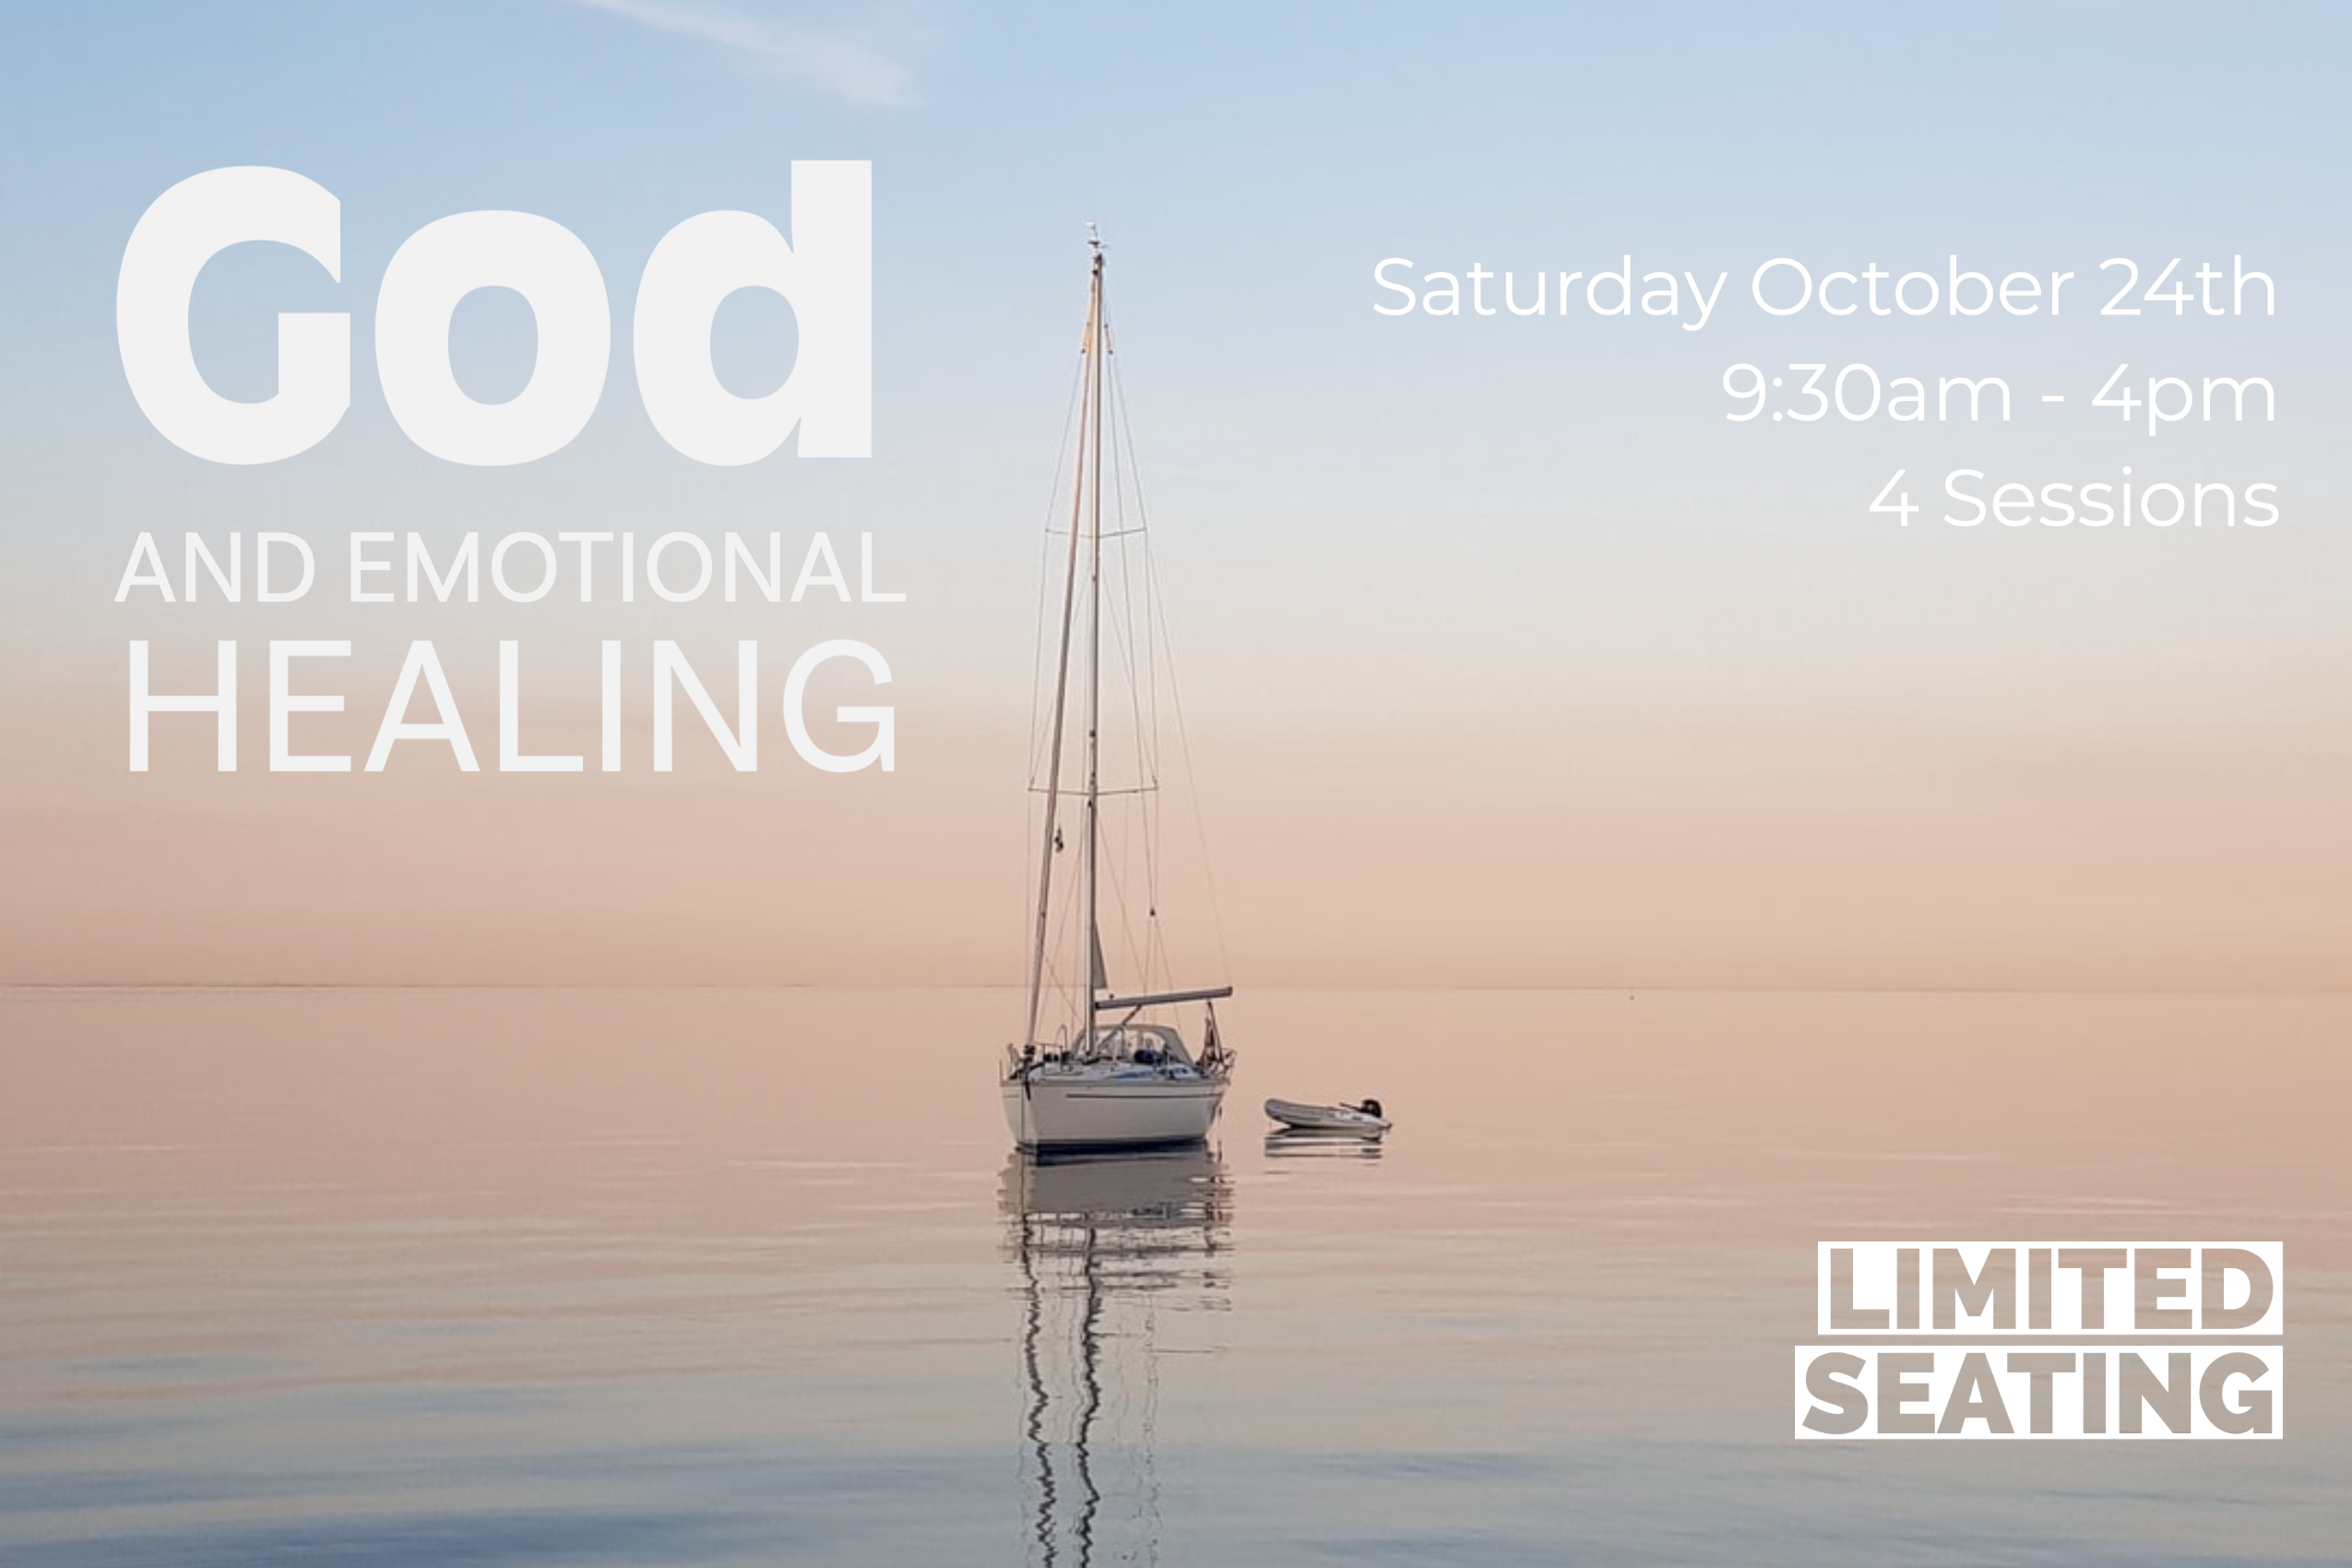 God And Emotional Healing Conference